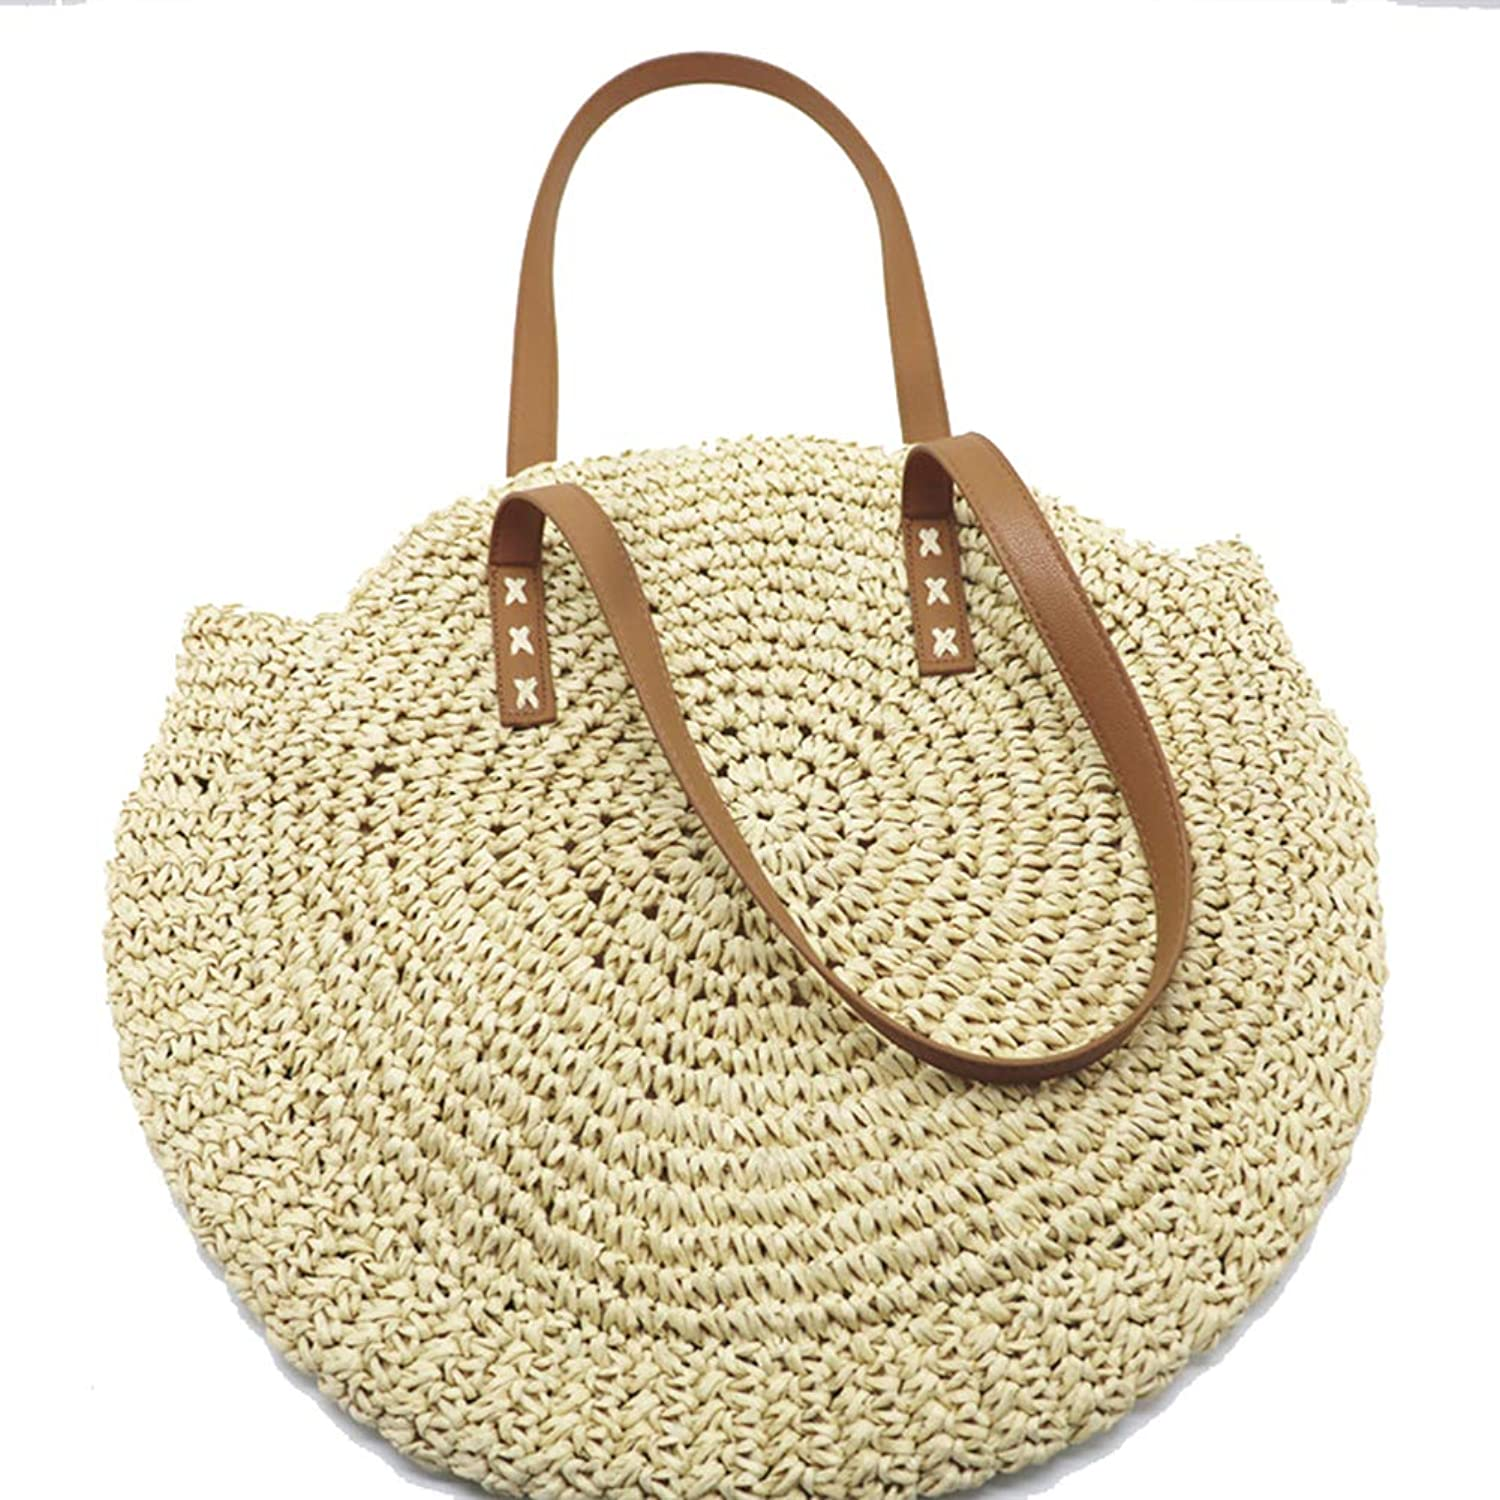 Onzama Women's Straw Handbags Large Summer Beach Tote Bags Woven Round Top Handle Shoulder Purse